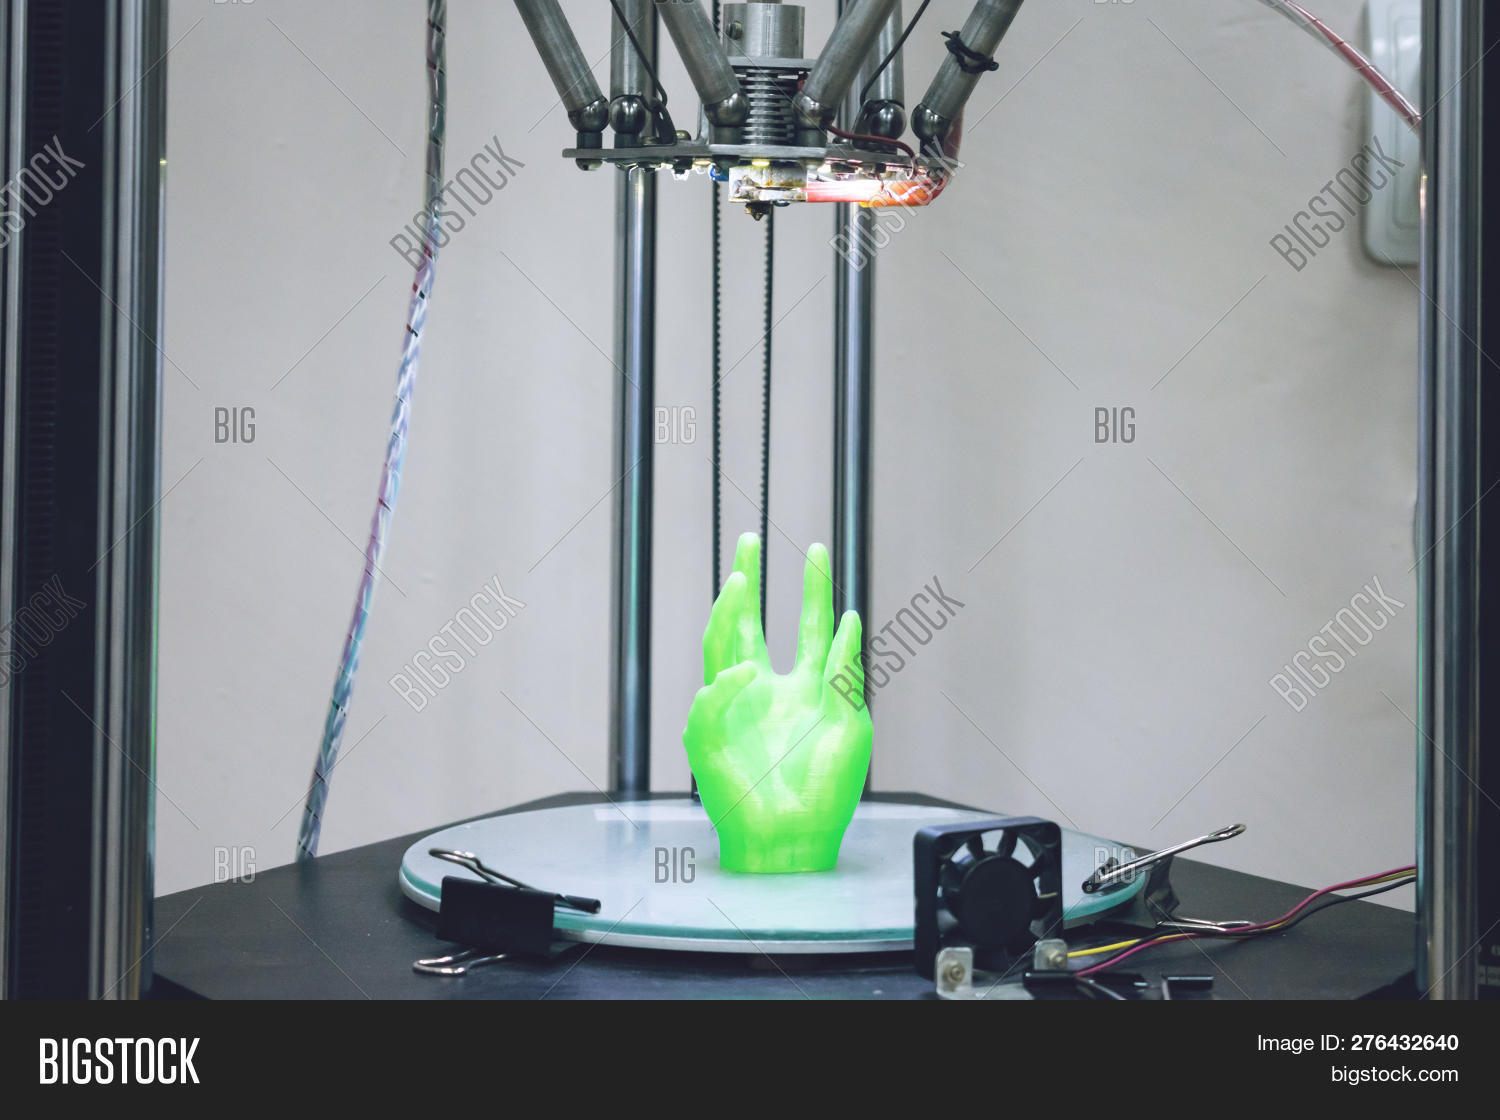 Green Plastic 3D Printed Human Hand Stands In Three-dimensional Printer. Object Model Printed On Aut